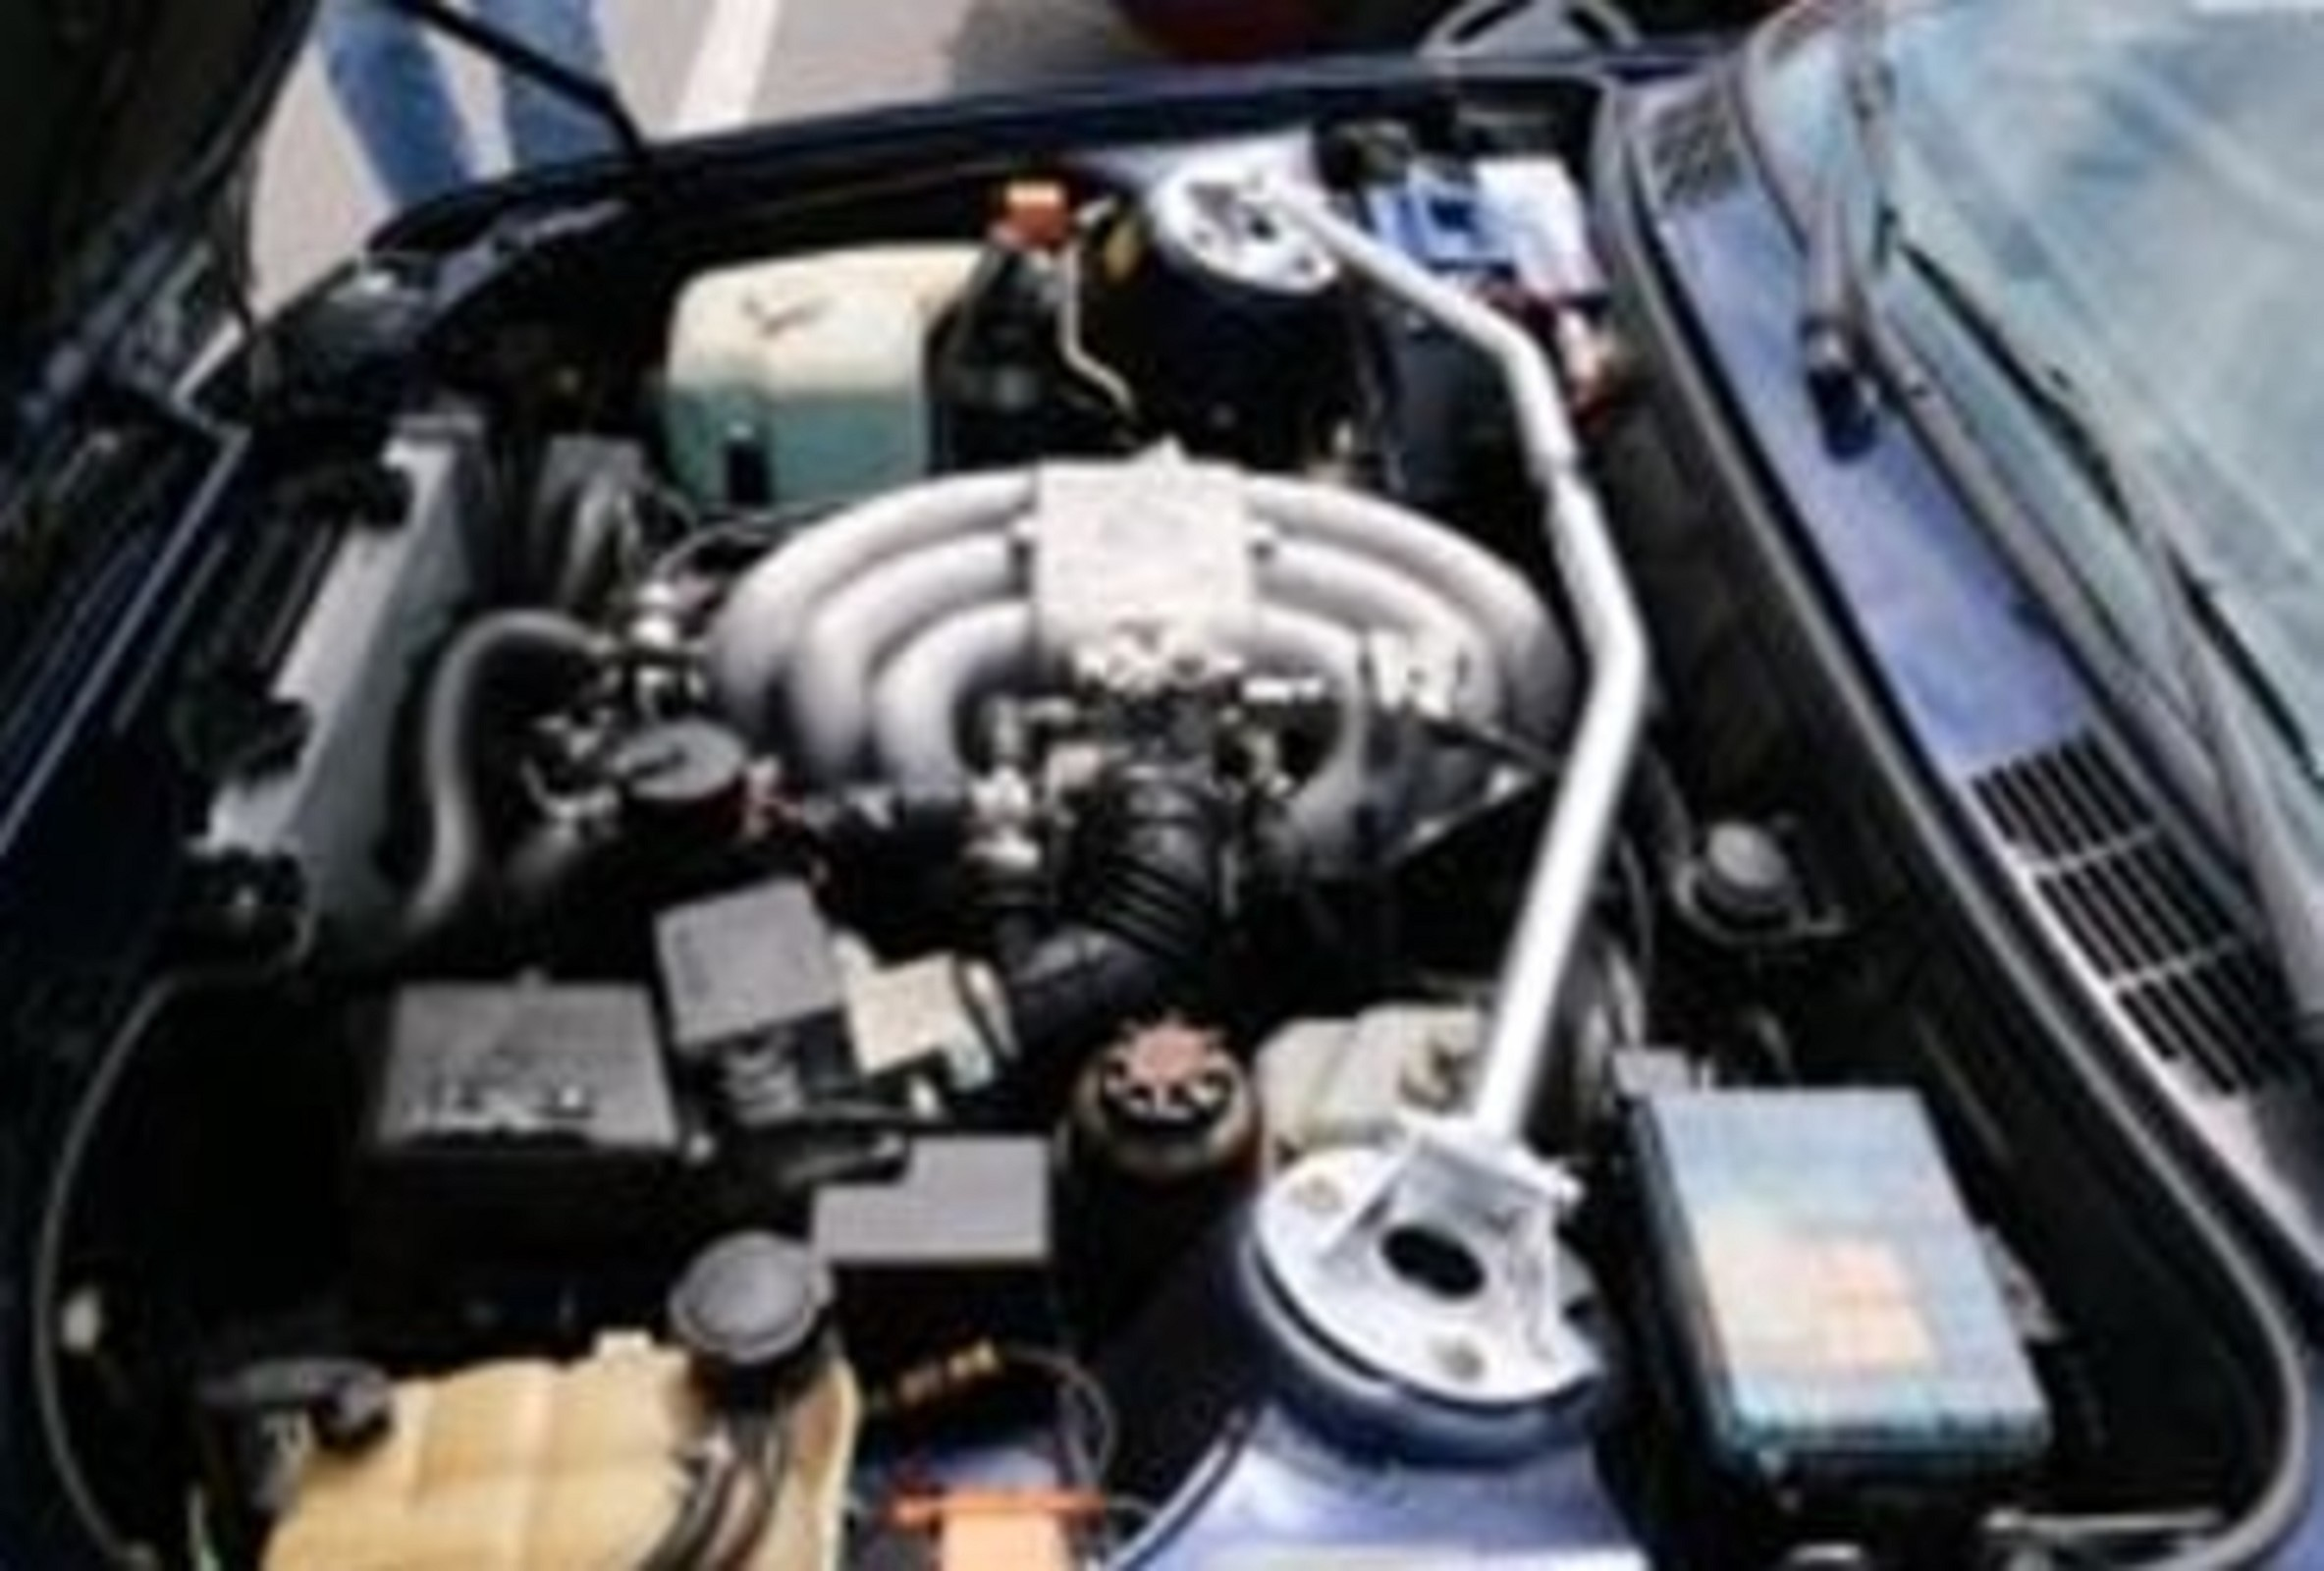 Complete Used Engines Mazda 323 For Sale In USA | Used Engines